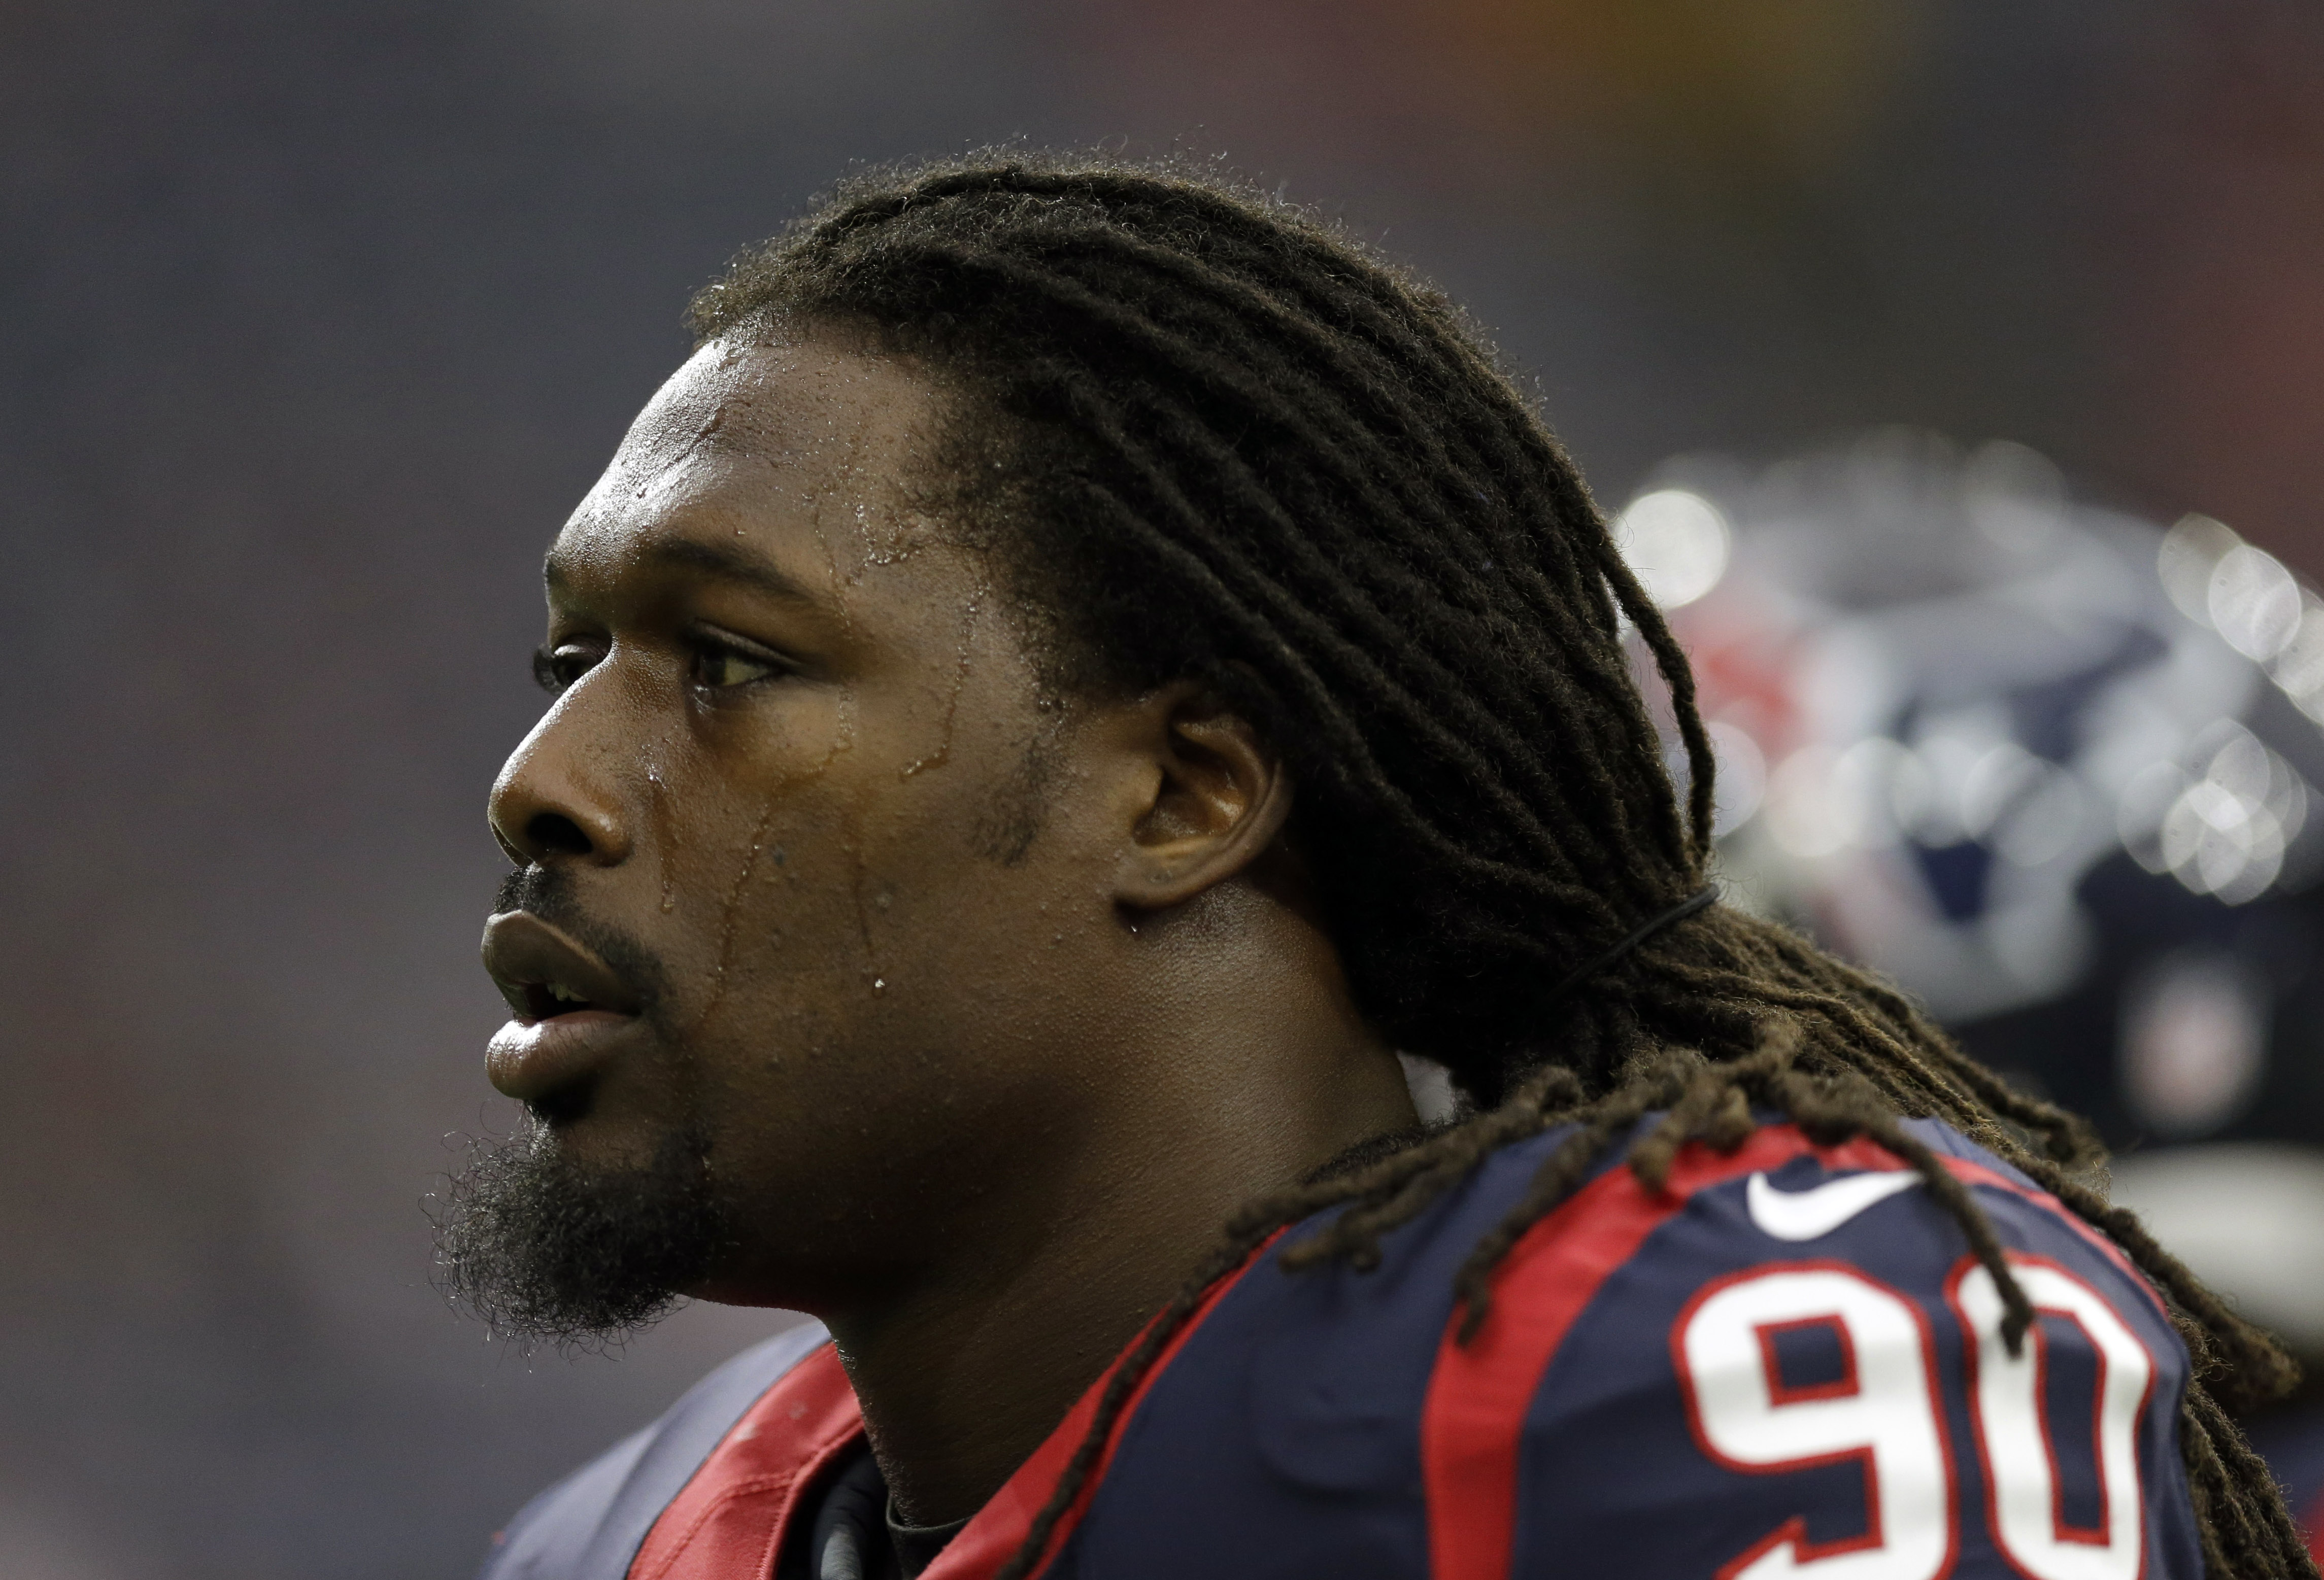 FILE - In this Sept. 27, 2015, file photo, Houston Texans outside linebacker Jadeveon Clowney (90) is shown before an NFL football game against Tampa in Houston. Clowney is finally healthy and playing well for the Texans. But there's something missing for